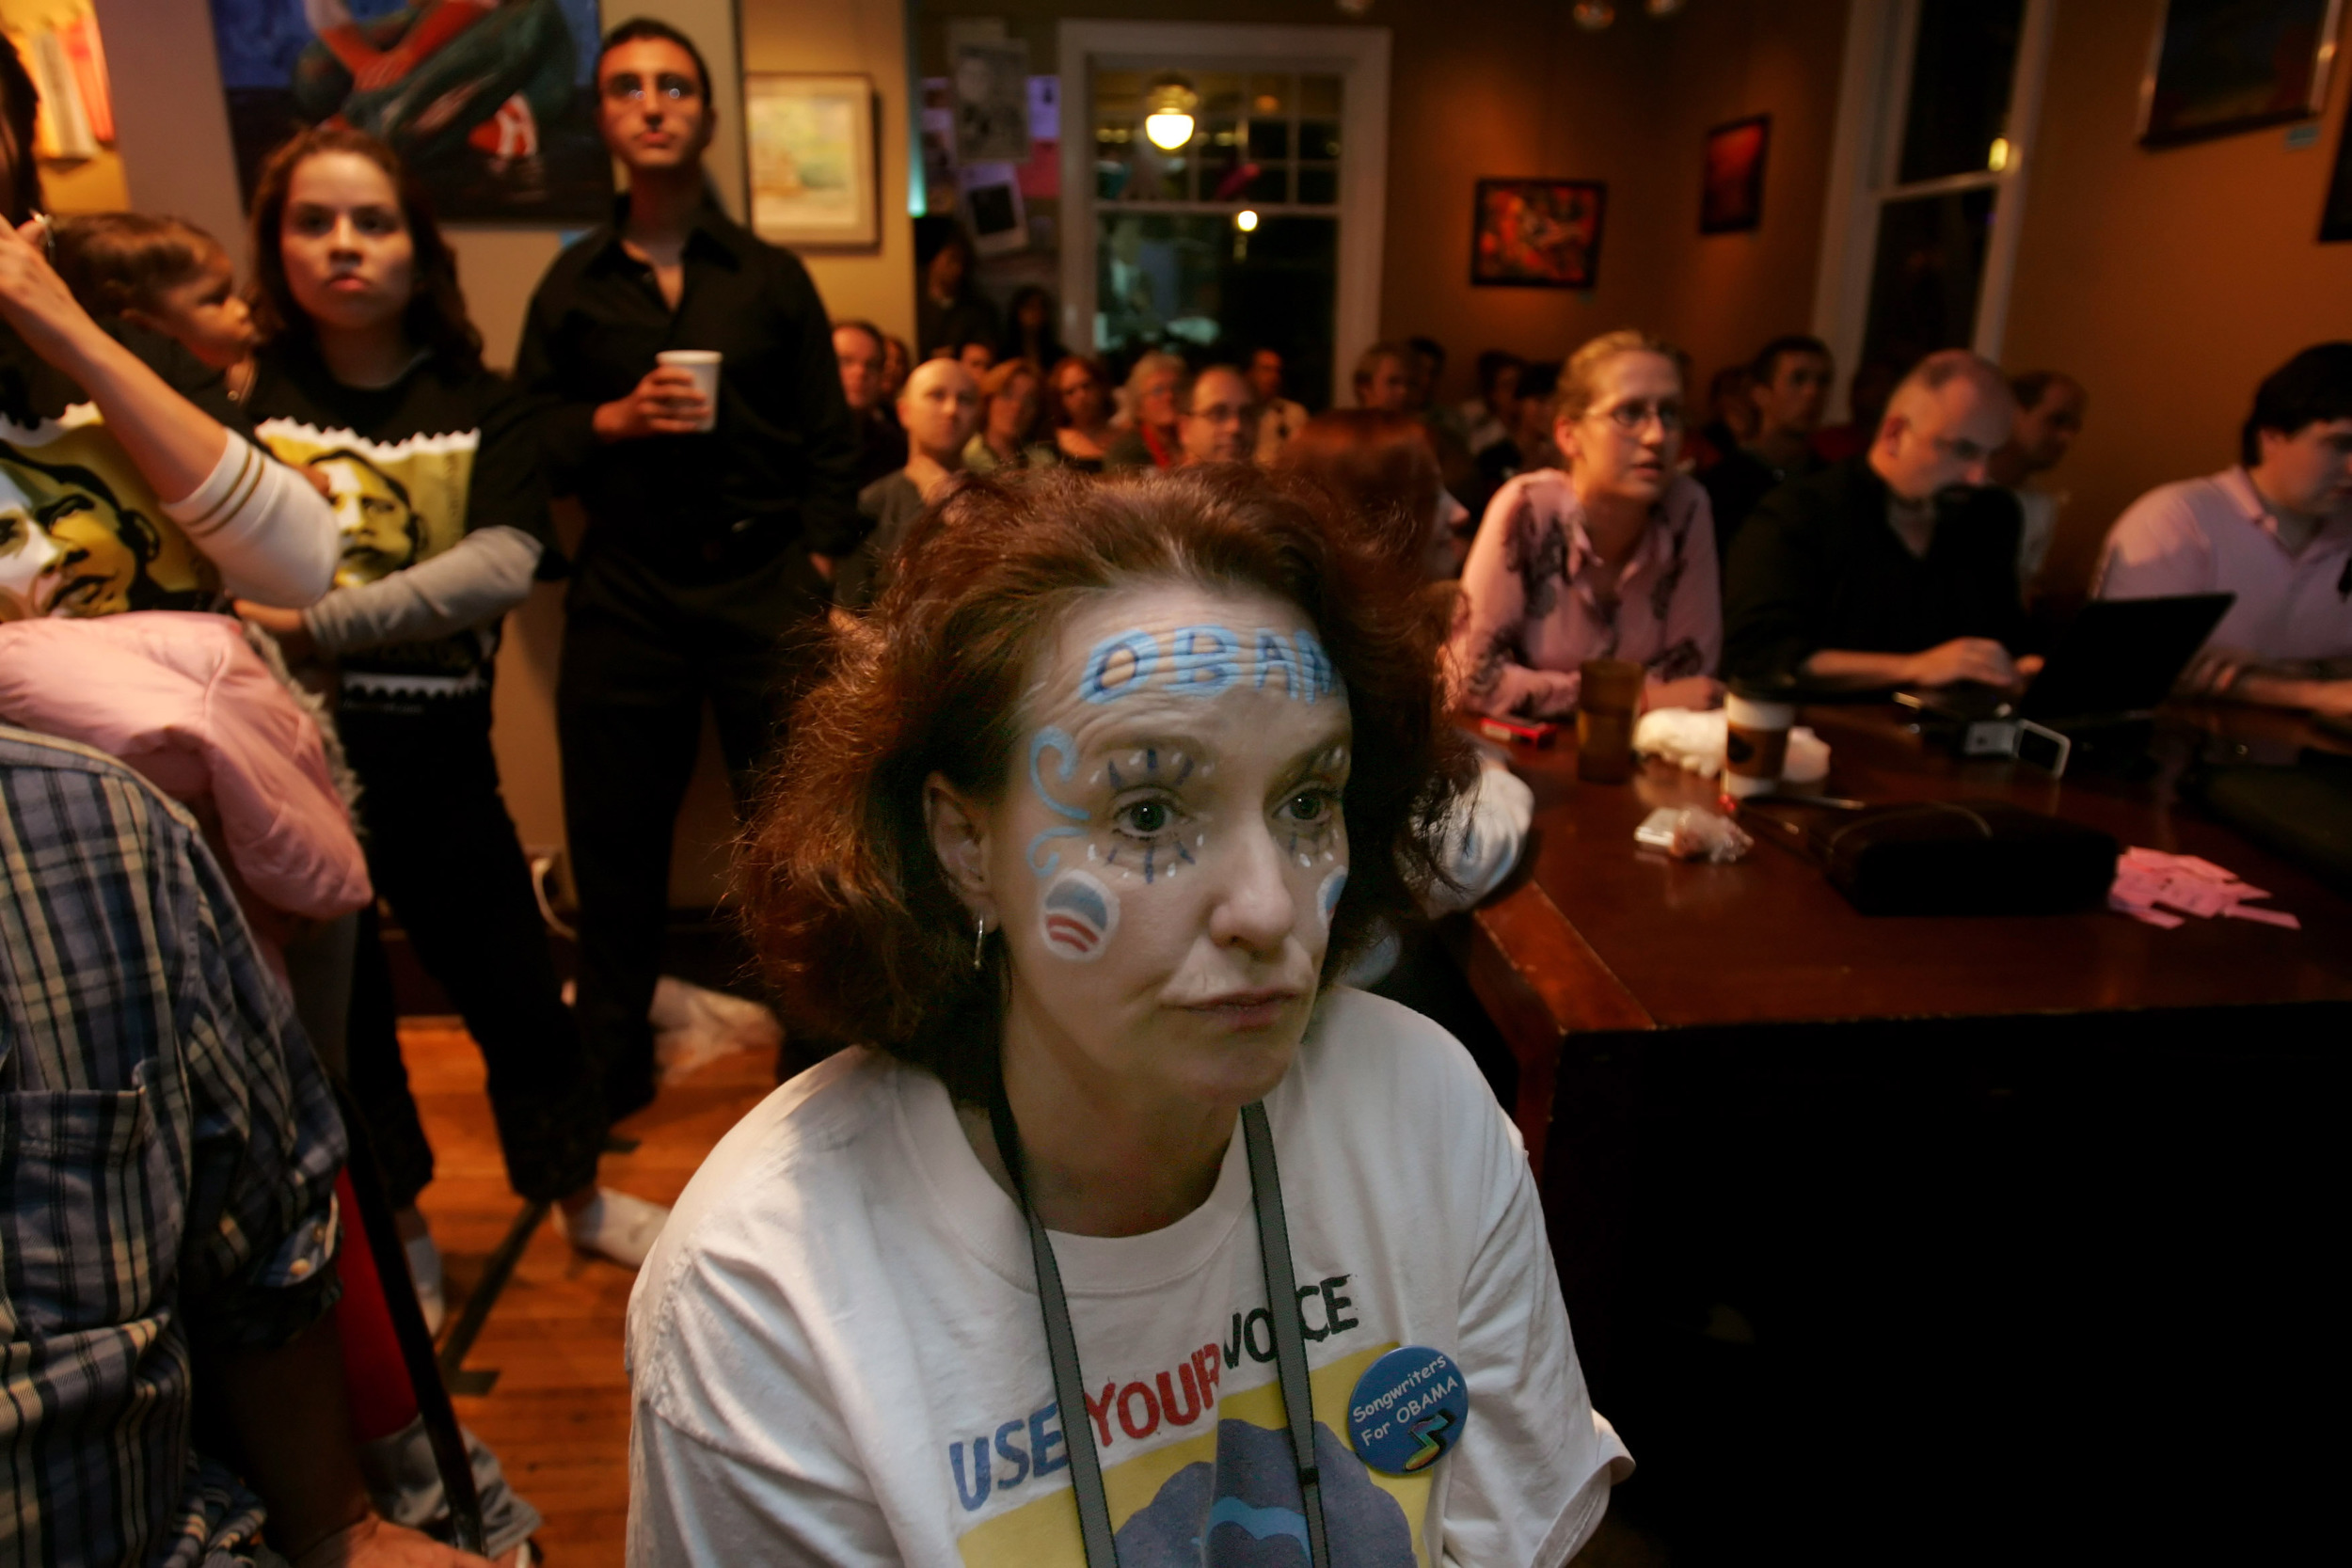 Holly Butler watches the beginning of the town hall debate at Belmont University on TV at nearby Bongo Java coffee shop.